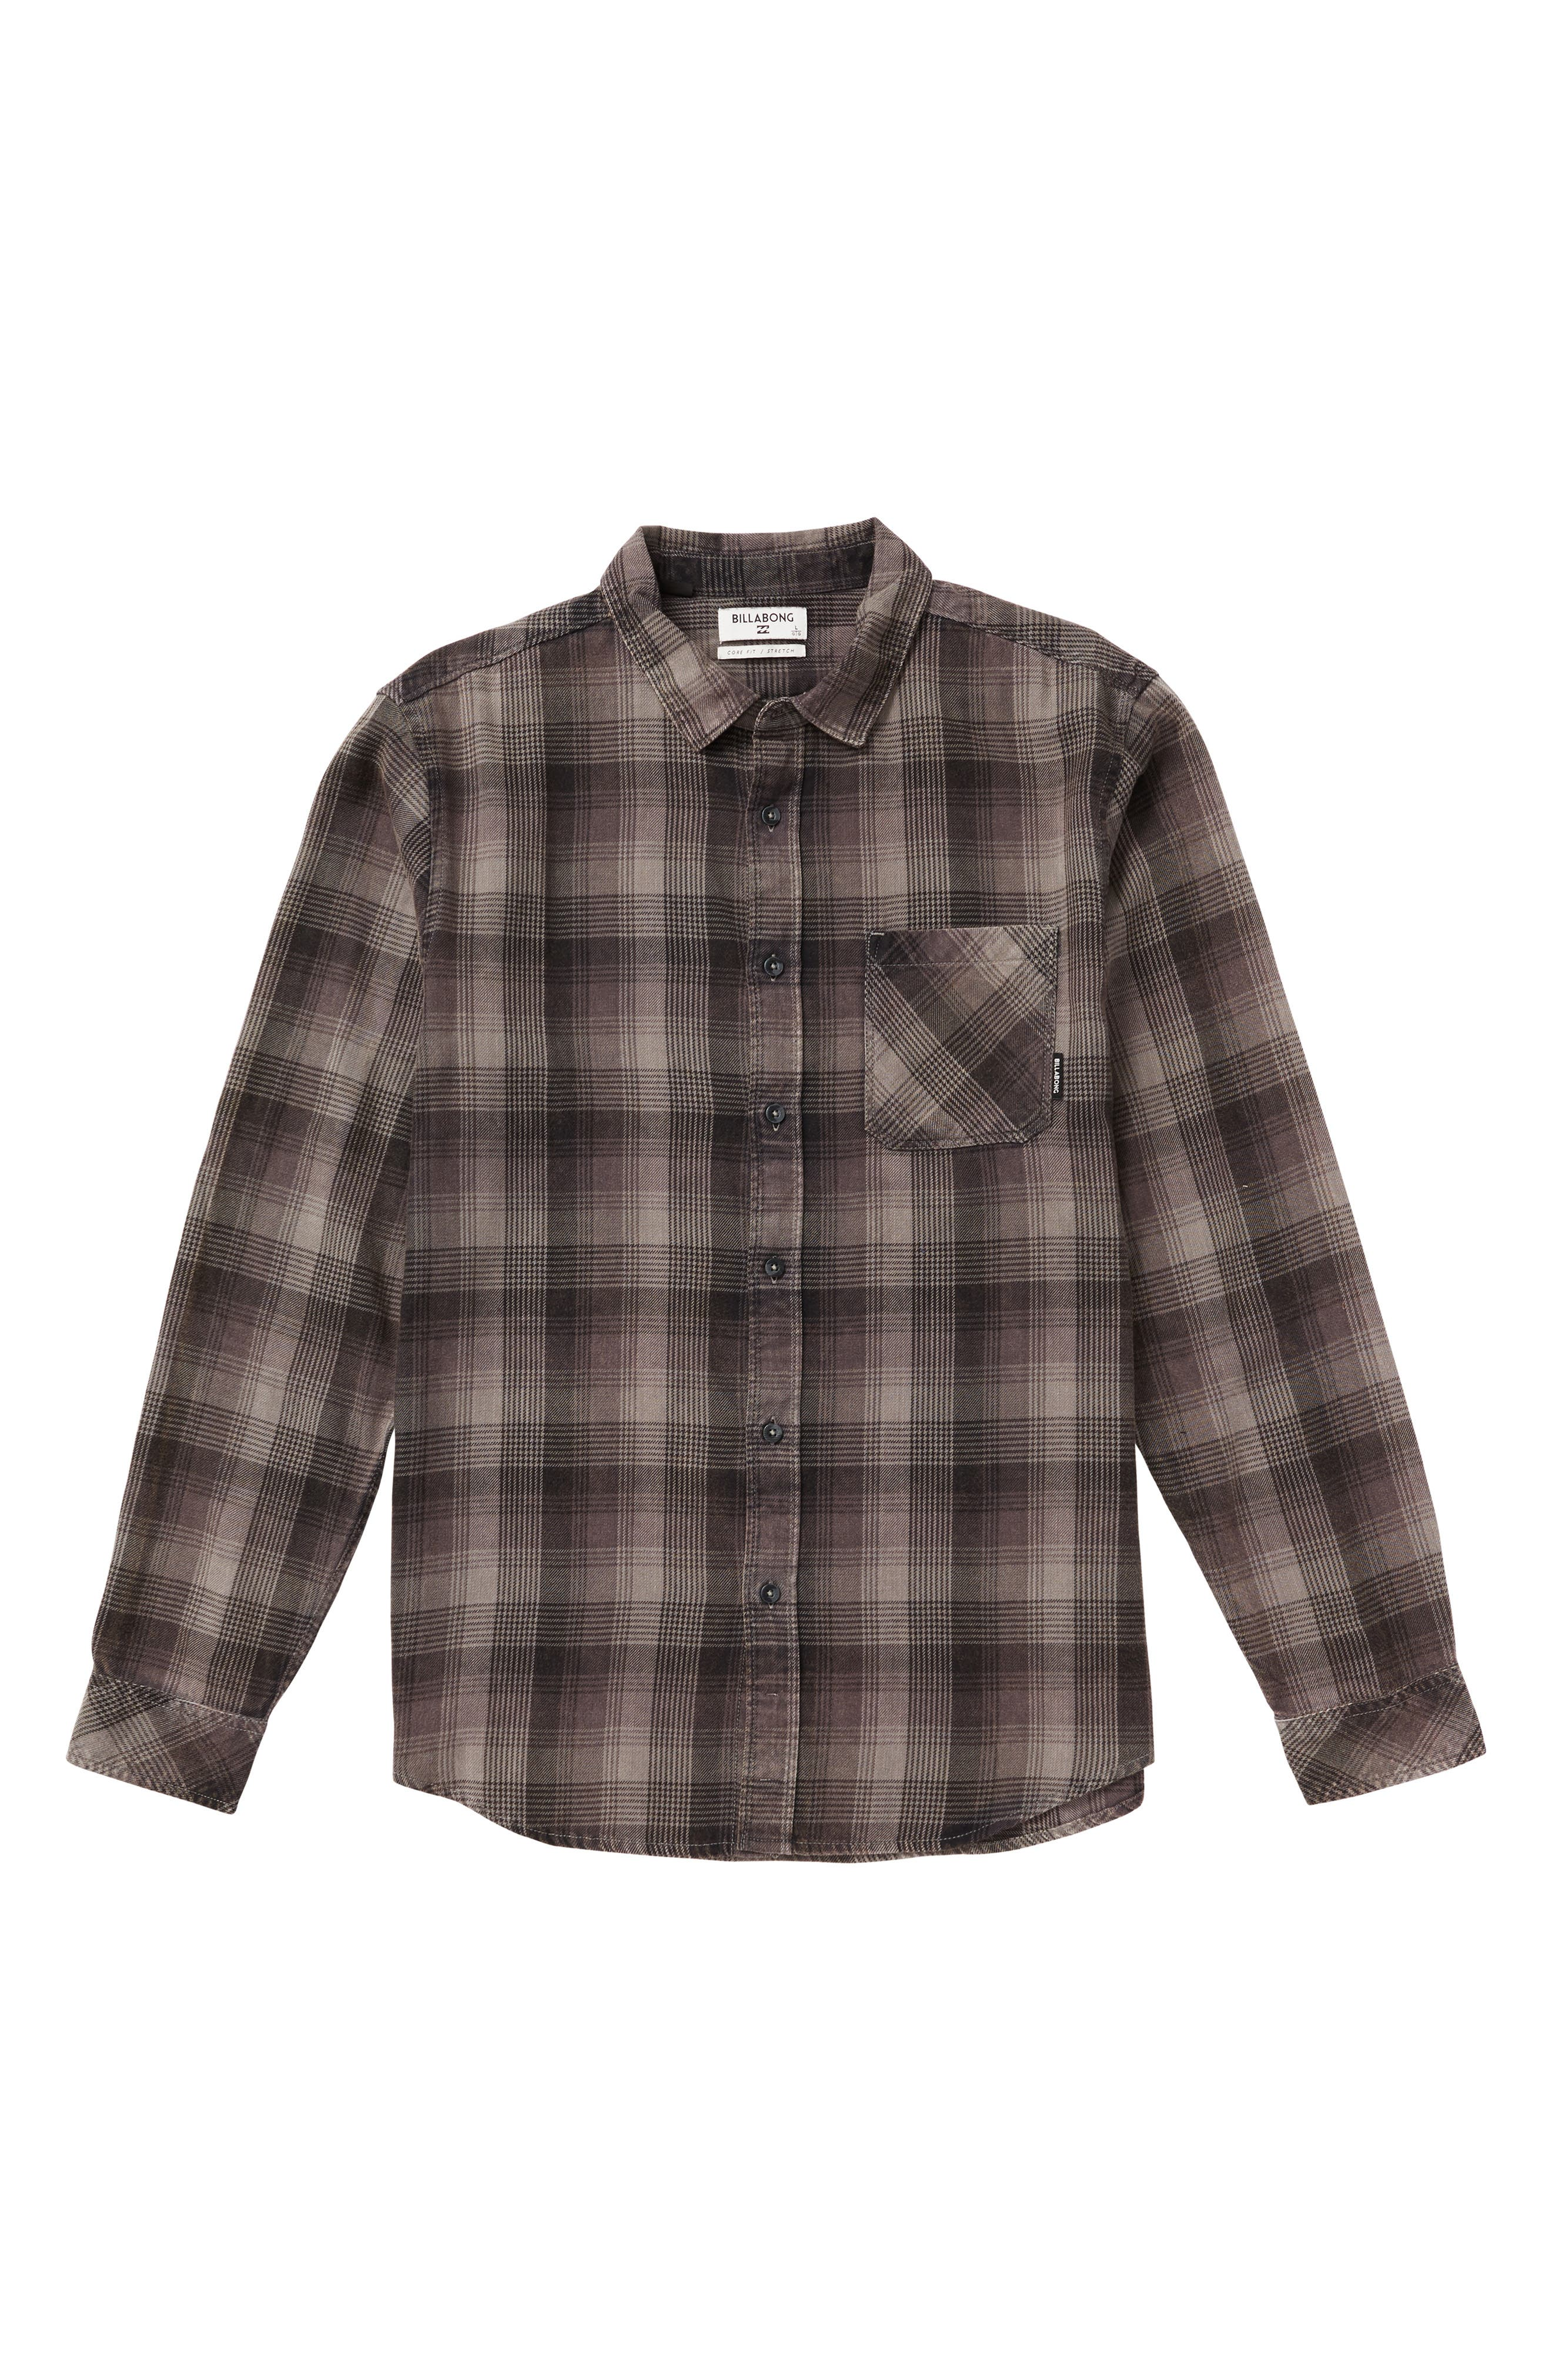 BILLABONG,                             Freemont Flannel Shirt,                             Main thumbnail 1, color,                             CHARCOAL